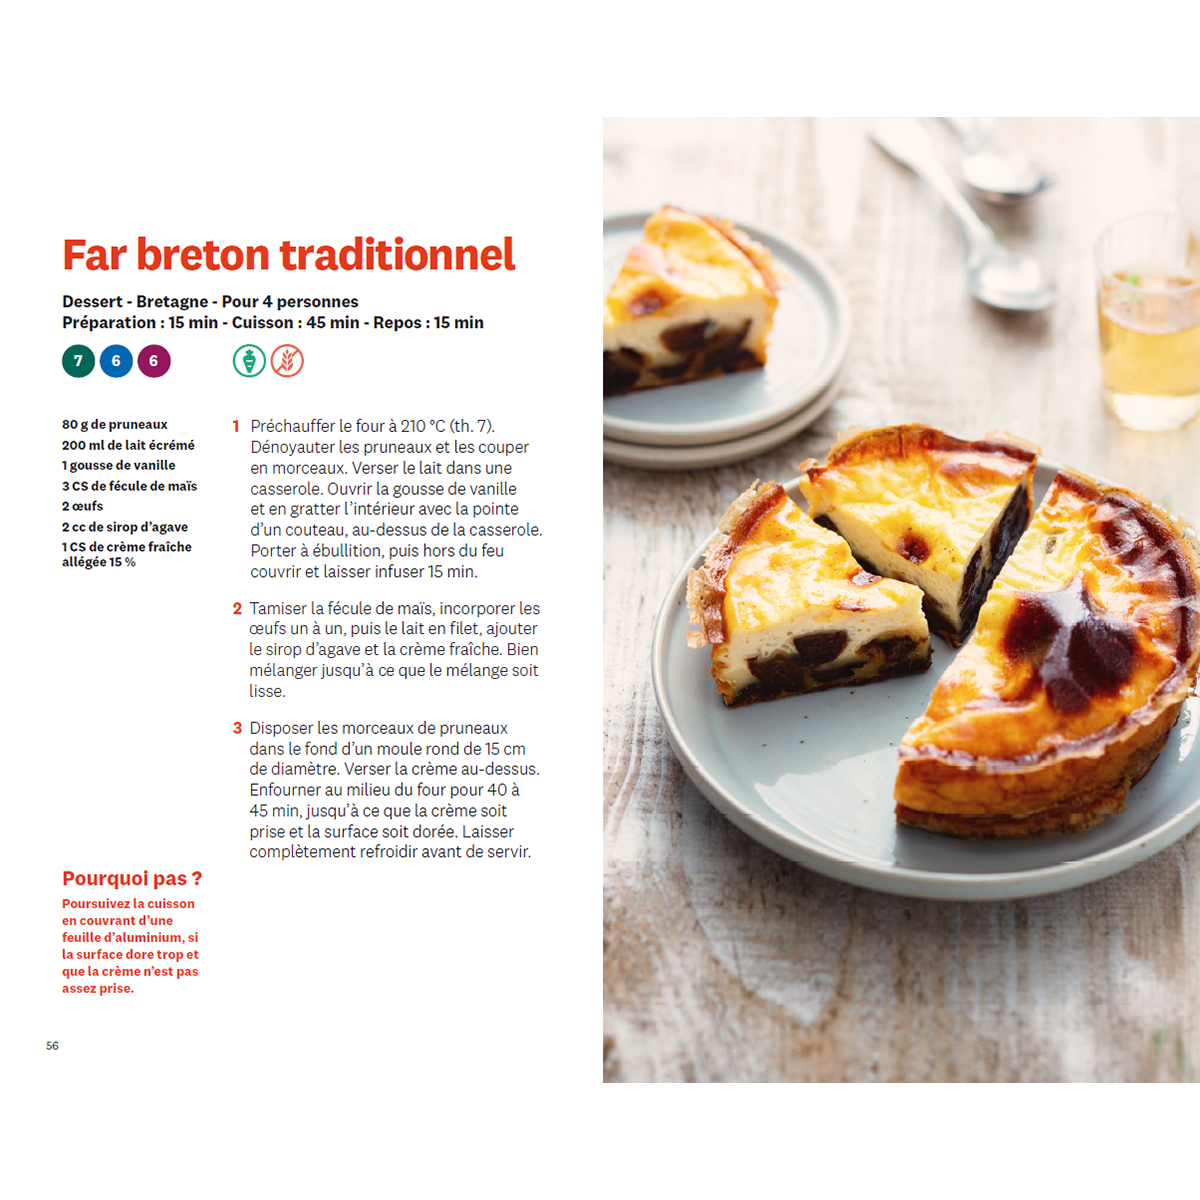 Recettes de nos regions far breton traditionel